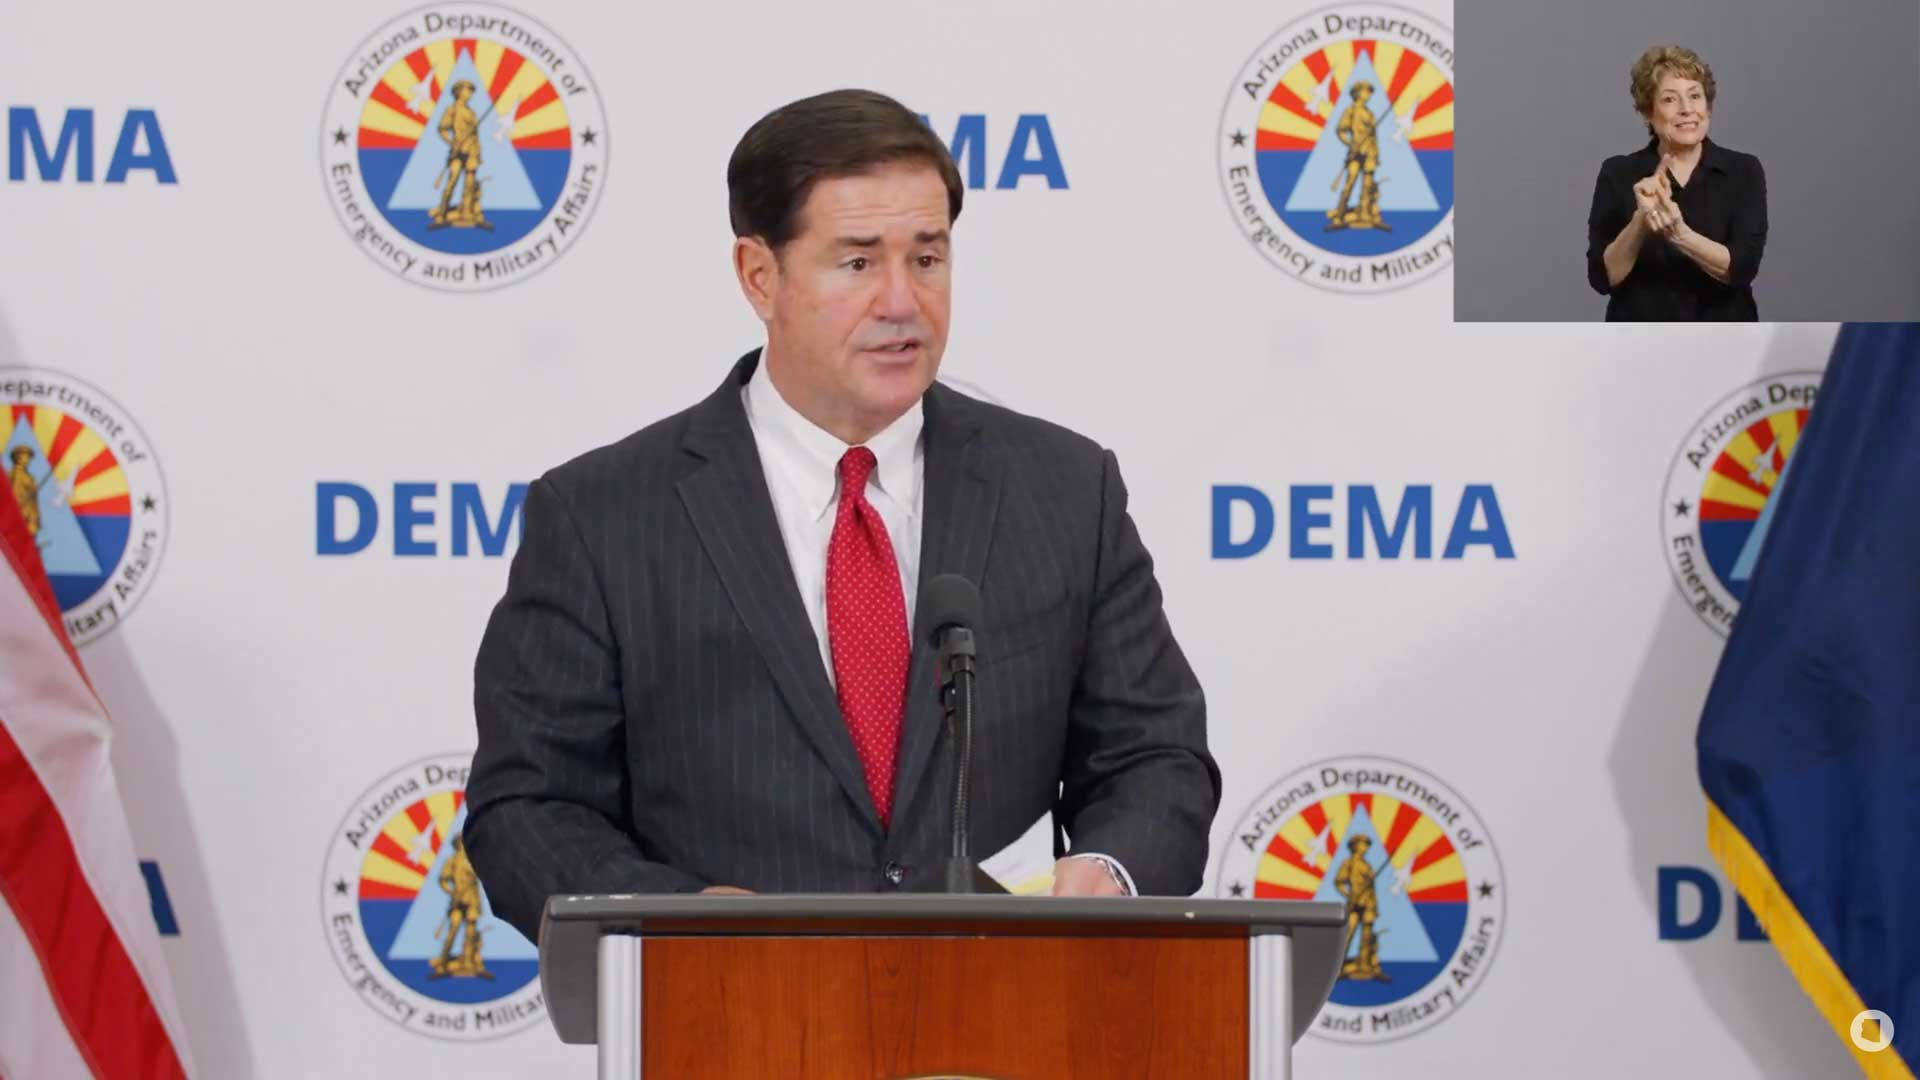 Arizona Gov. Doug Ducey gives an update on the state's COVID-19 response, Aug. 20, 2020.